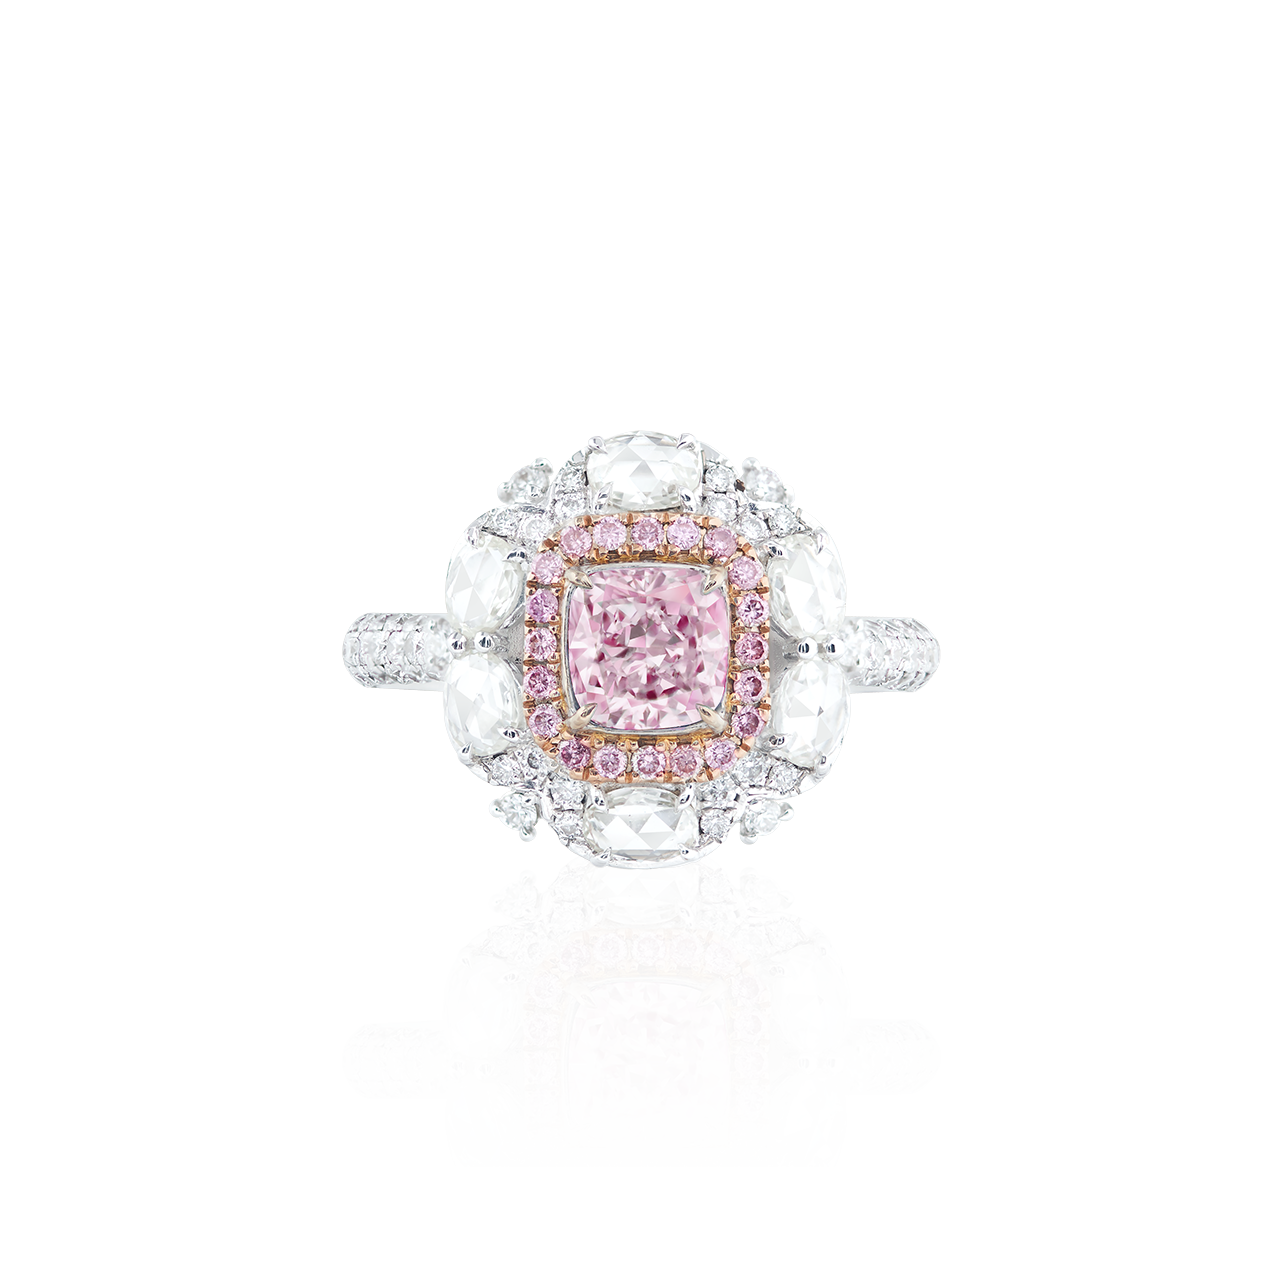 GIA 1.01 克拉 粉鑽鑽戒